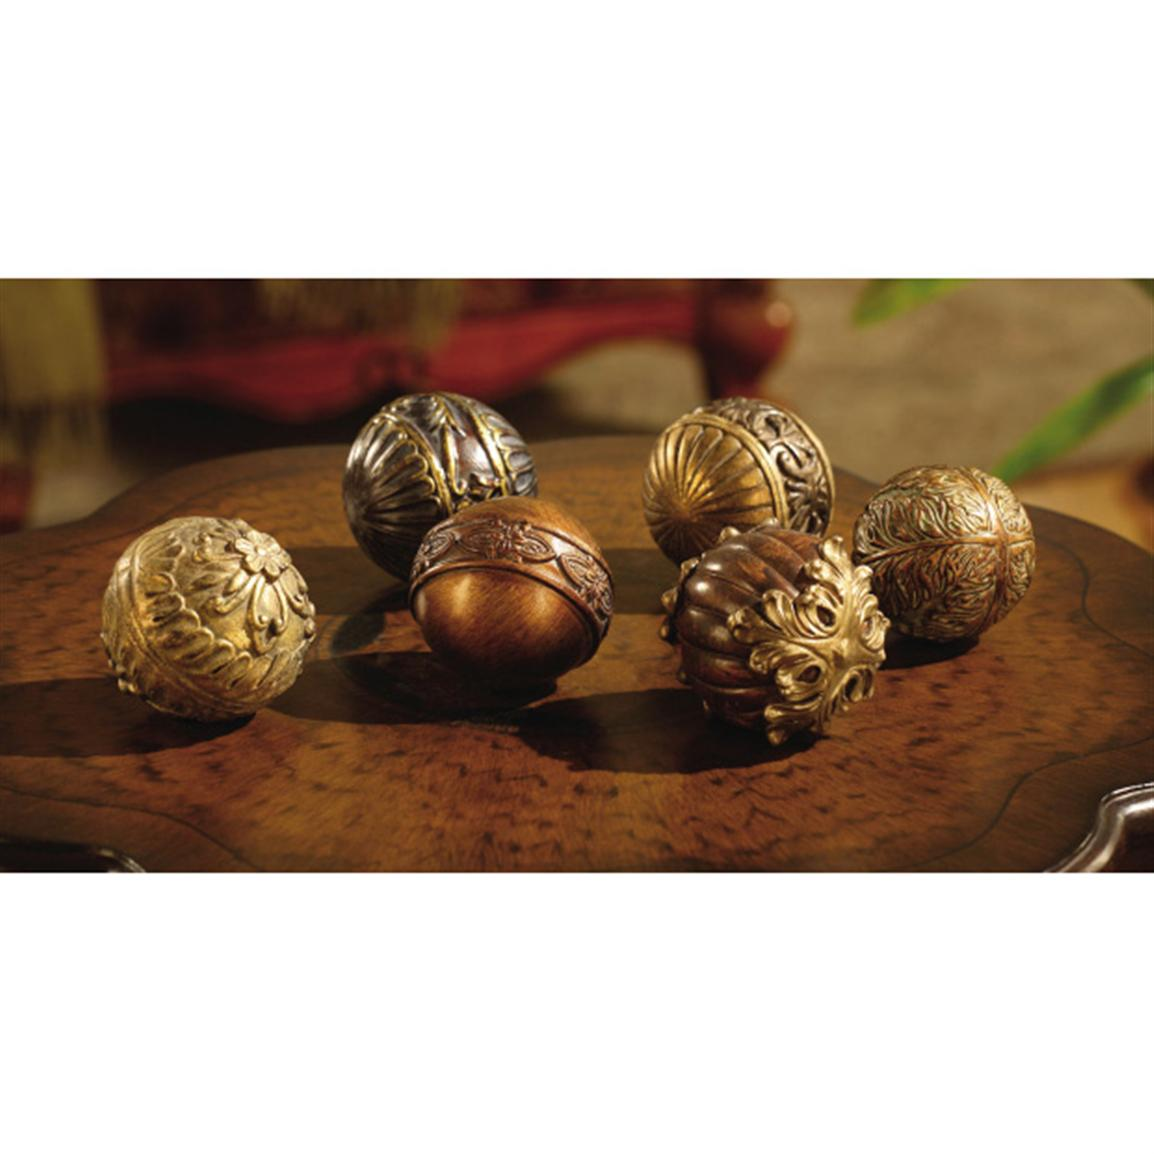 golden decorative orbs for table accessories ideas